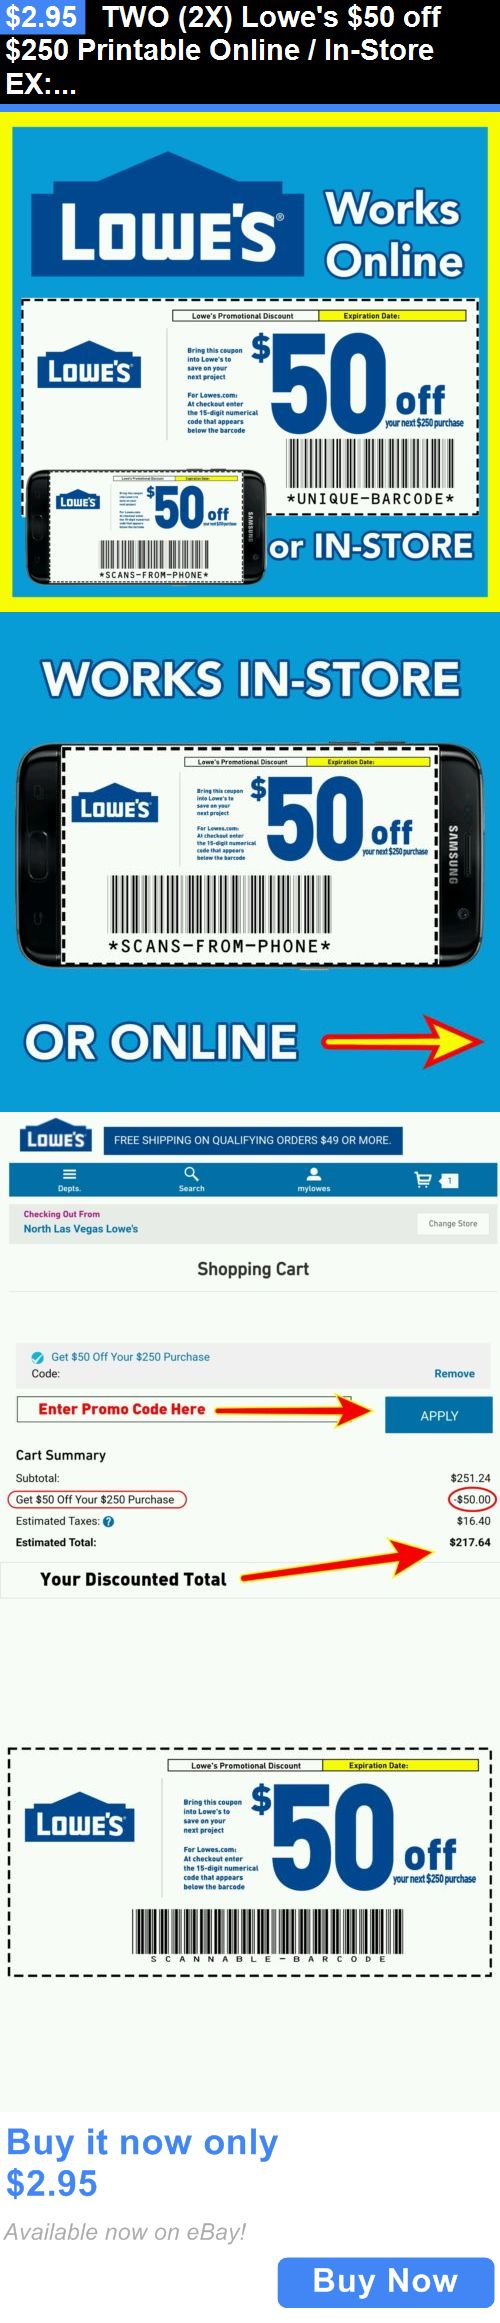 Coupons: Two (2X) Lowes $50 Off $250 Printable Online / In-Store Ex:11/30/16 Email 3 Min BUY IT NOW ONLY: $2.95